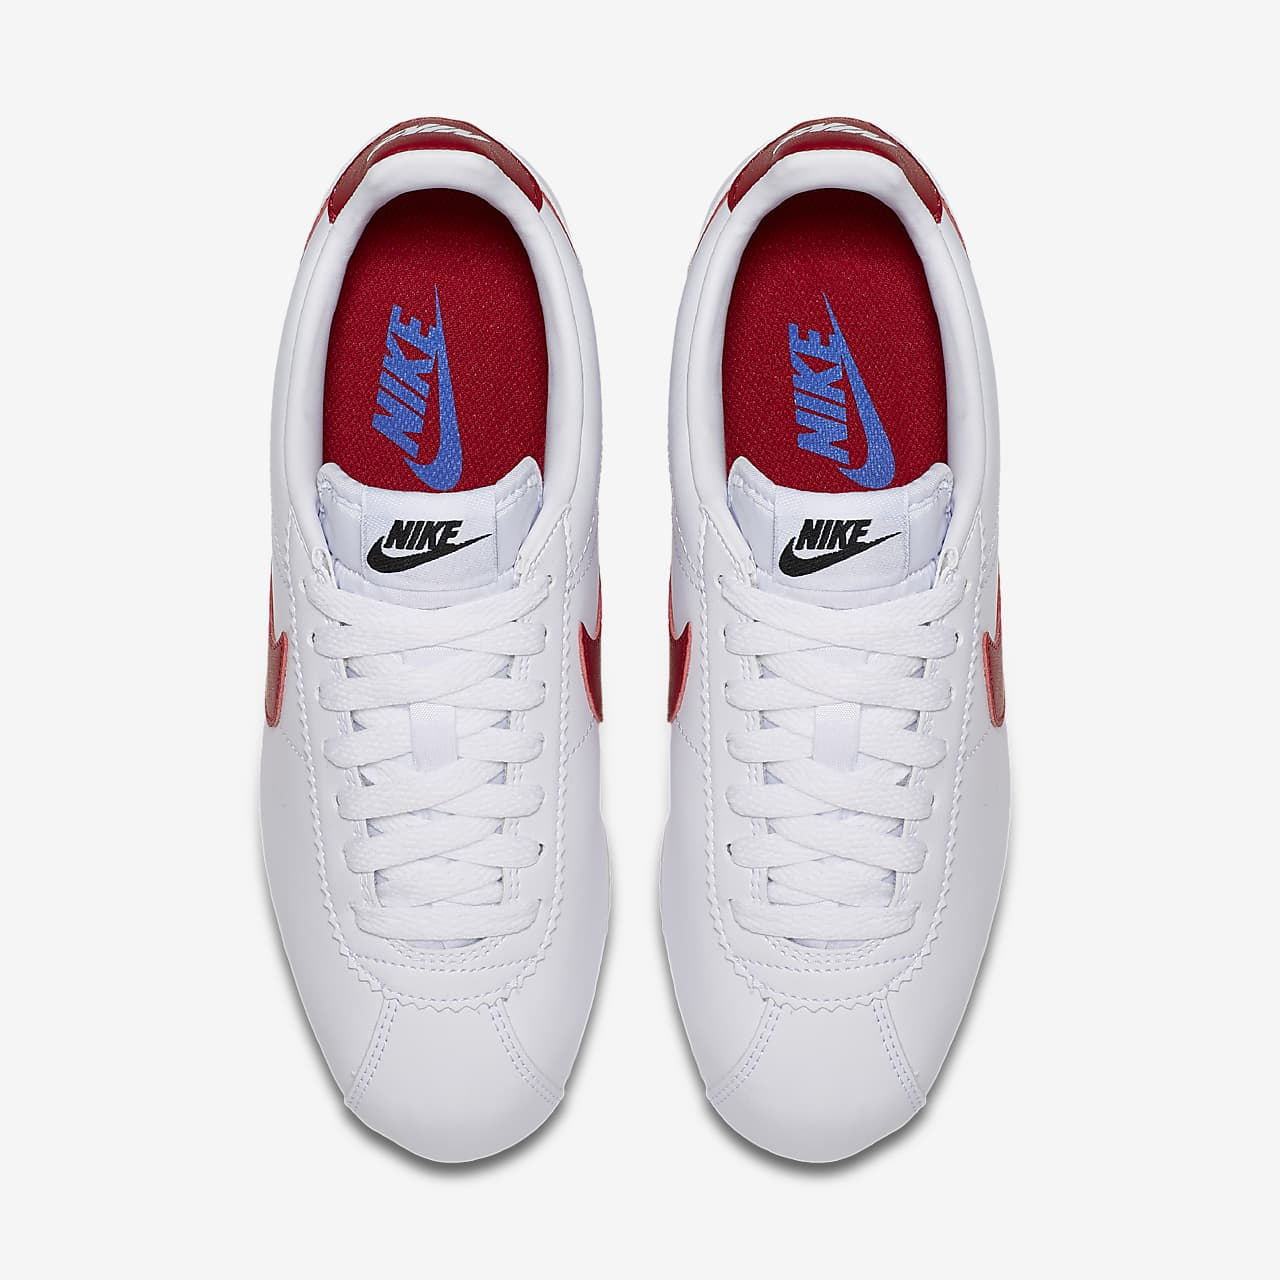 classic cortez leather nike sneaker donna